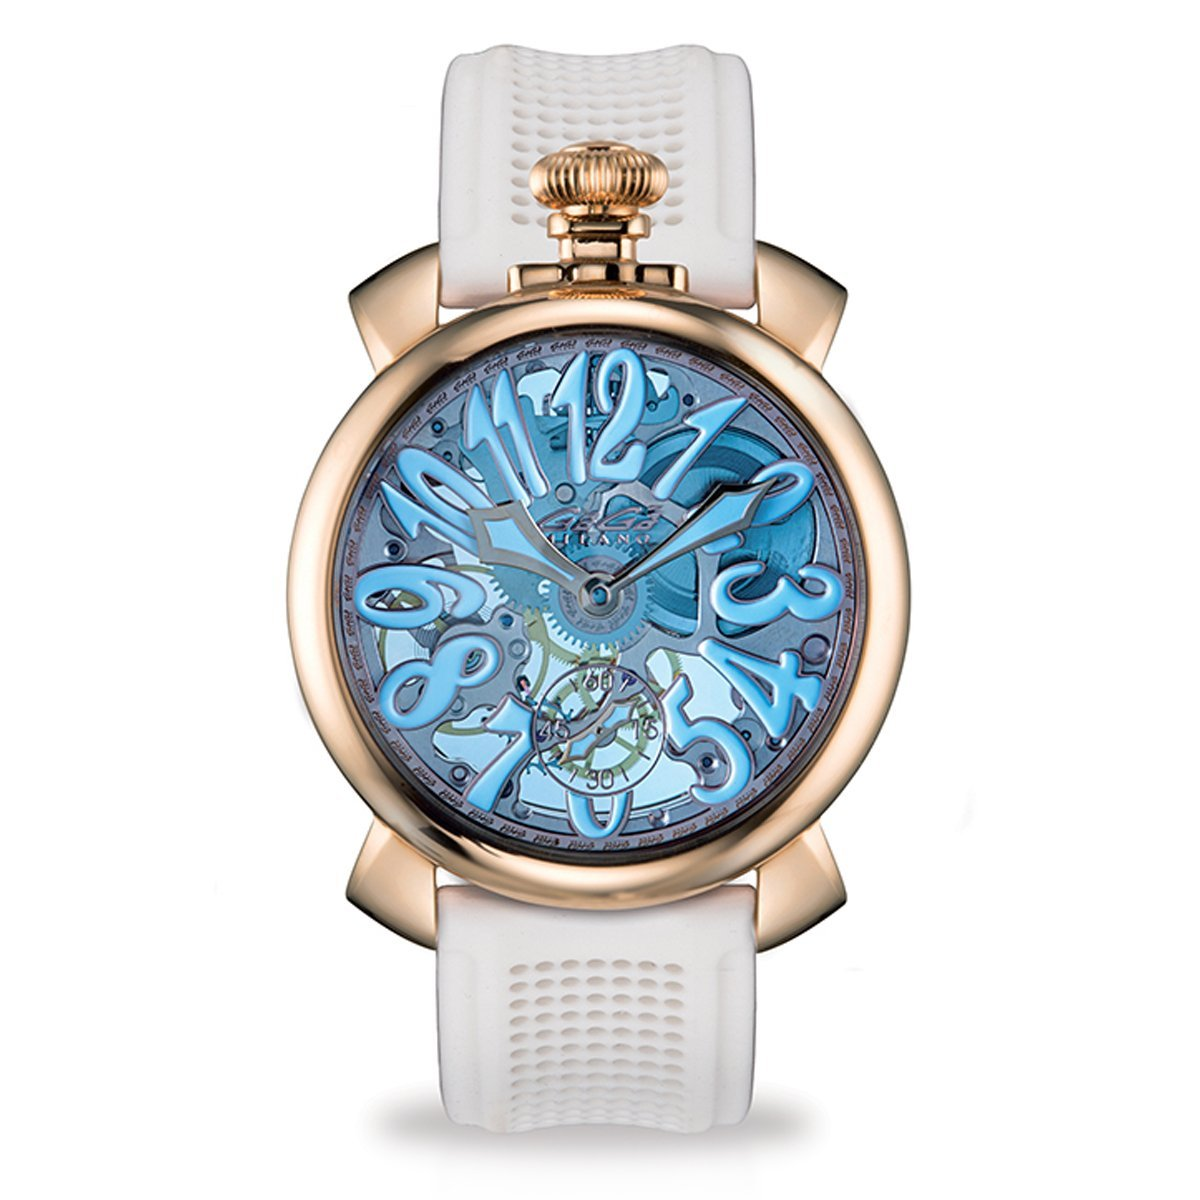 GaGà Milano Skeleton 48MM Rose Gold Blue - Watches & Crystals